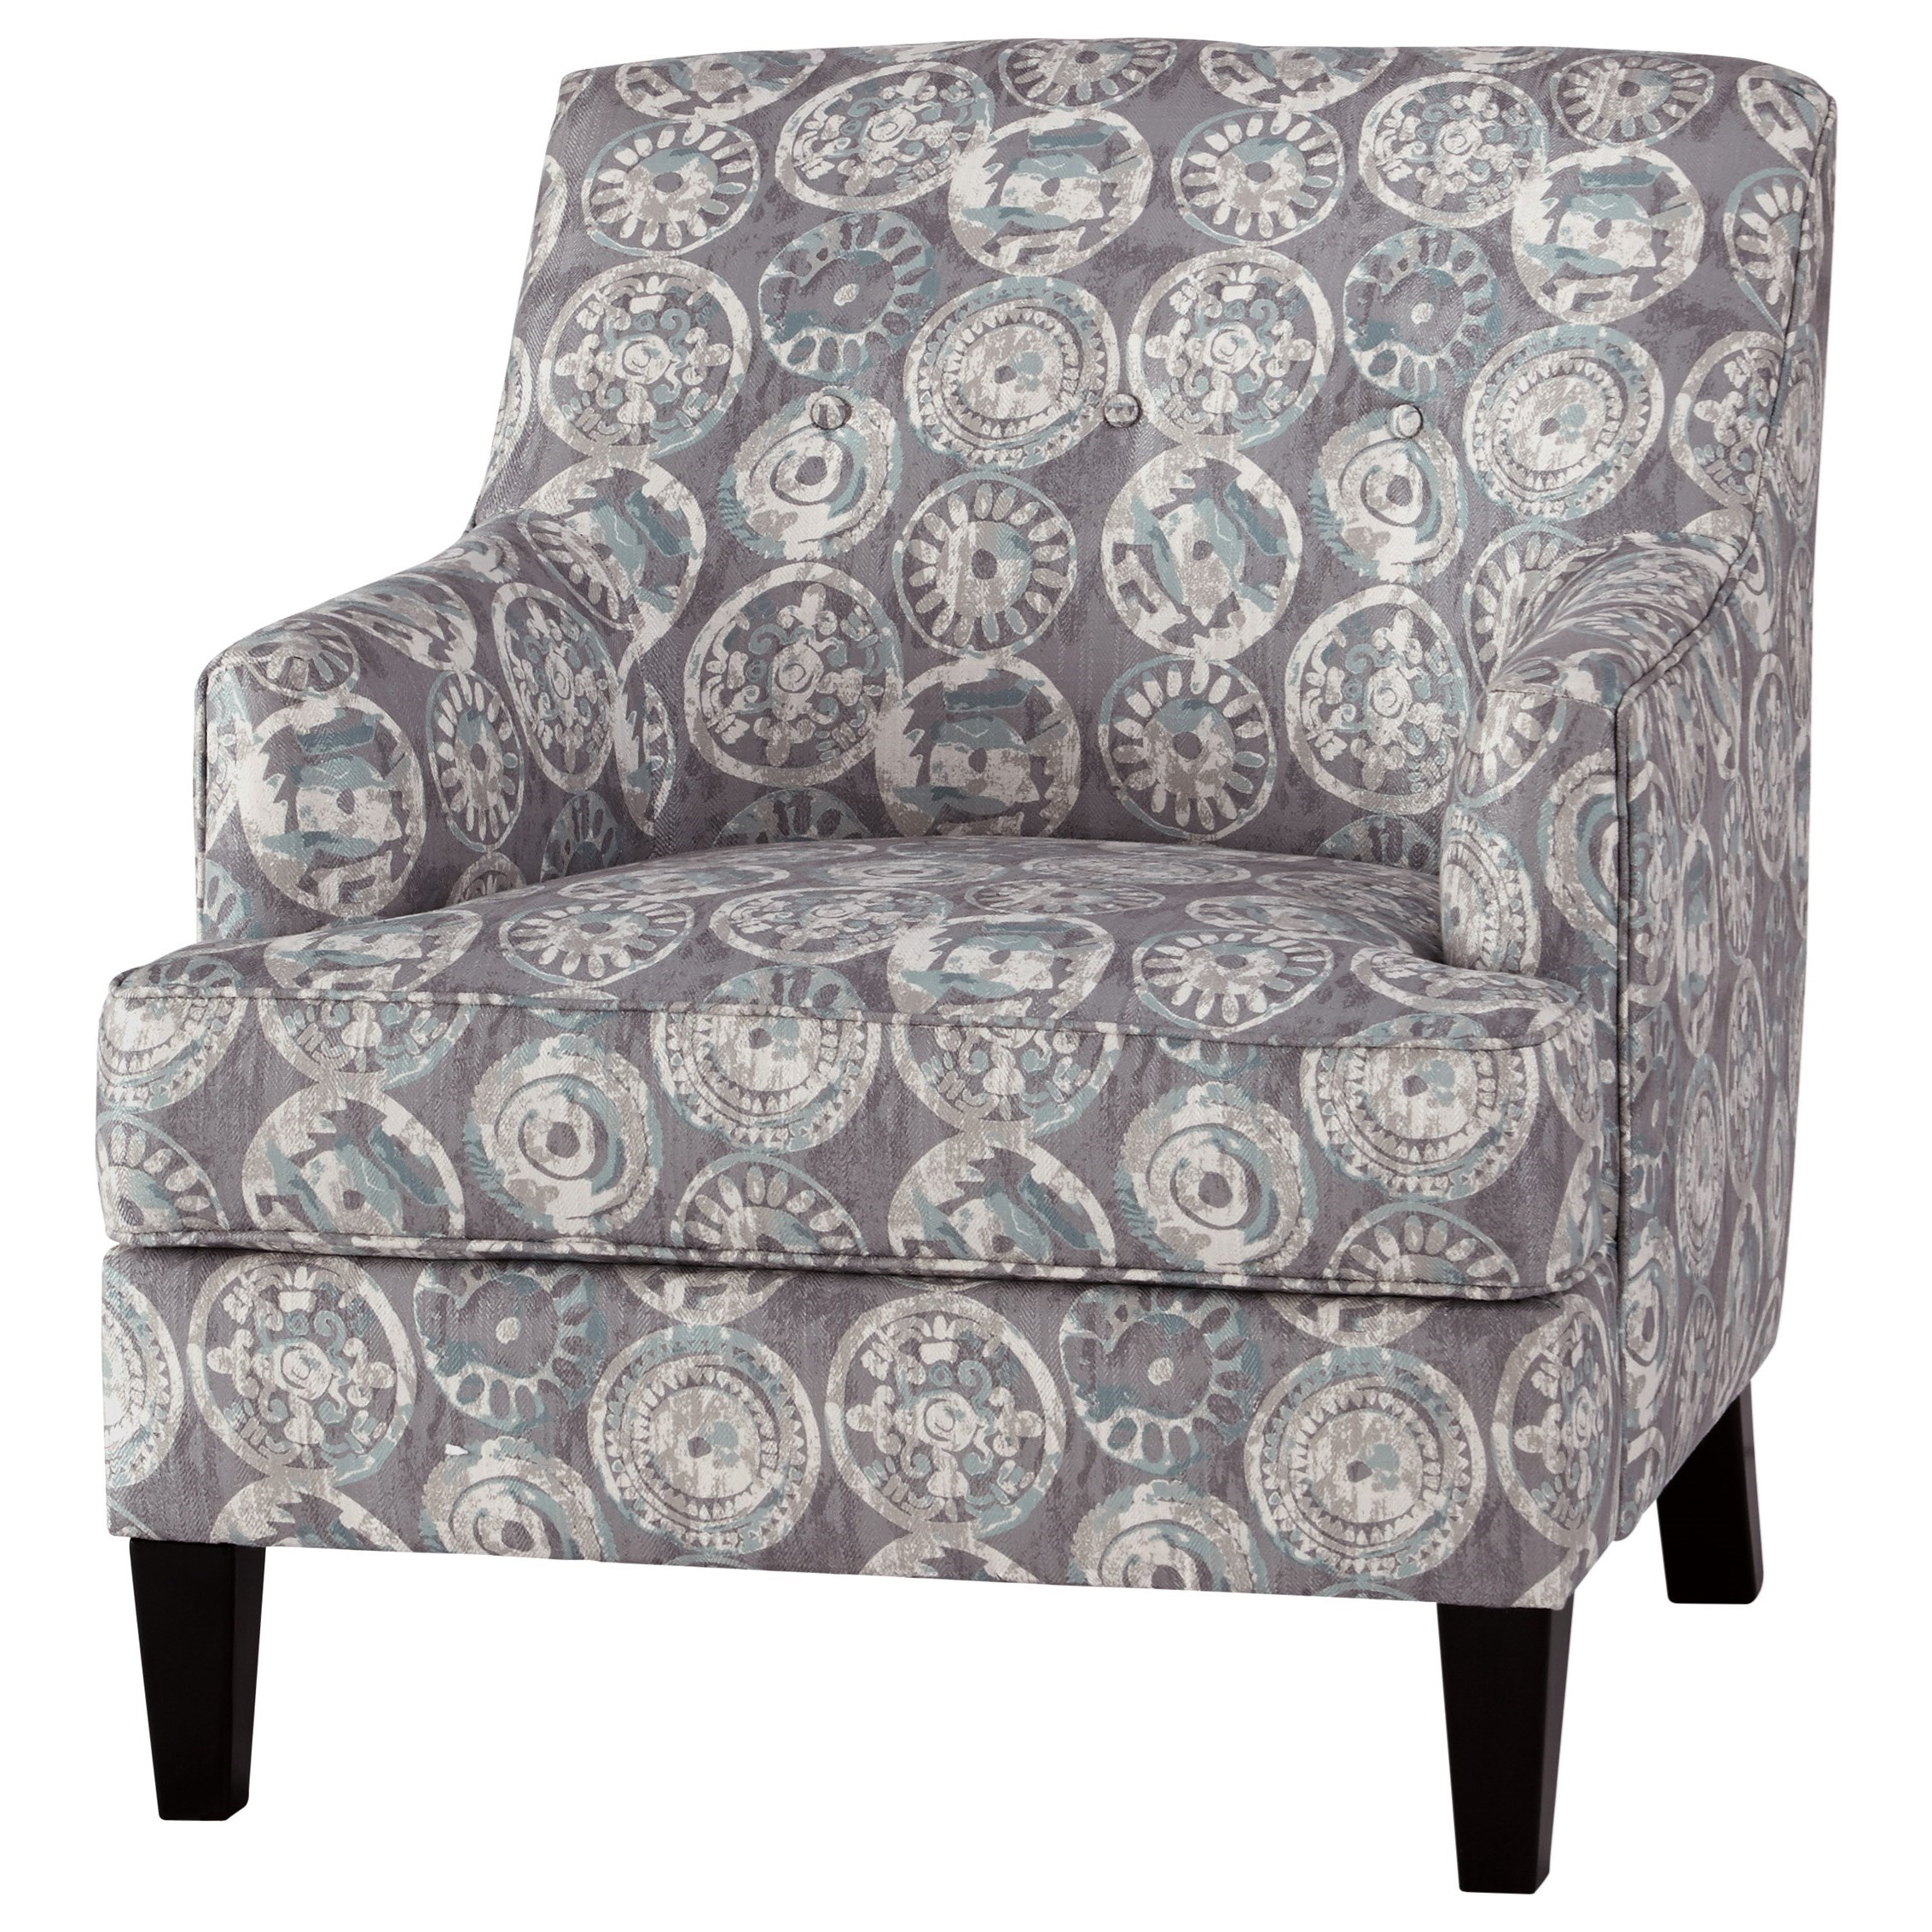 Signature Design by Ashley Adril Accent Chair - Item Number: A3000055